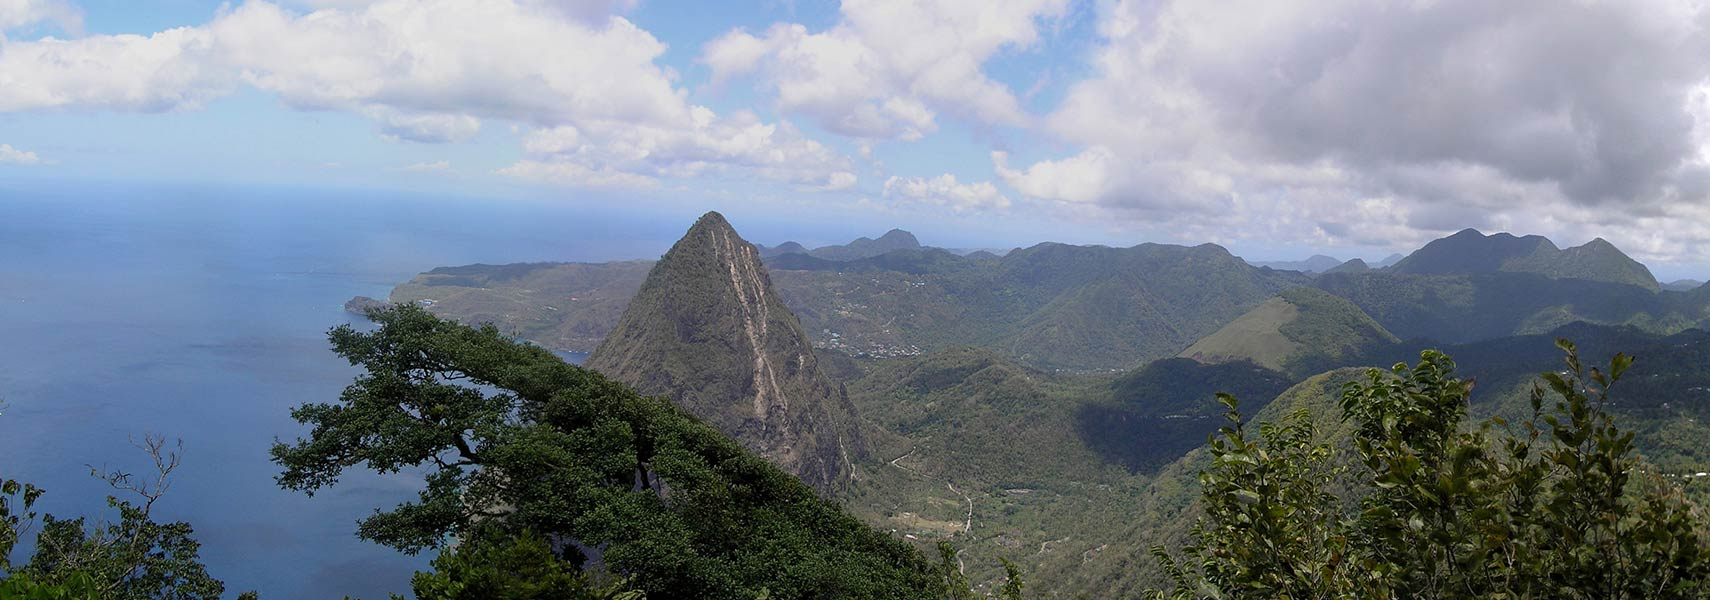 View from the top of Gros Piton, looking north, Saint Lucia